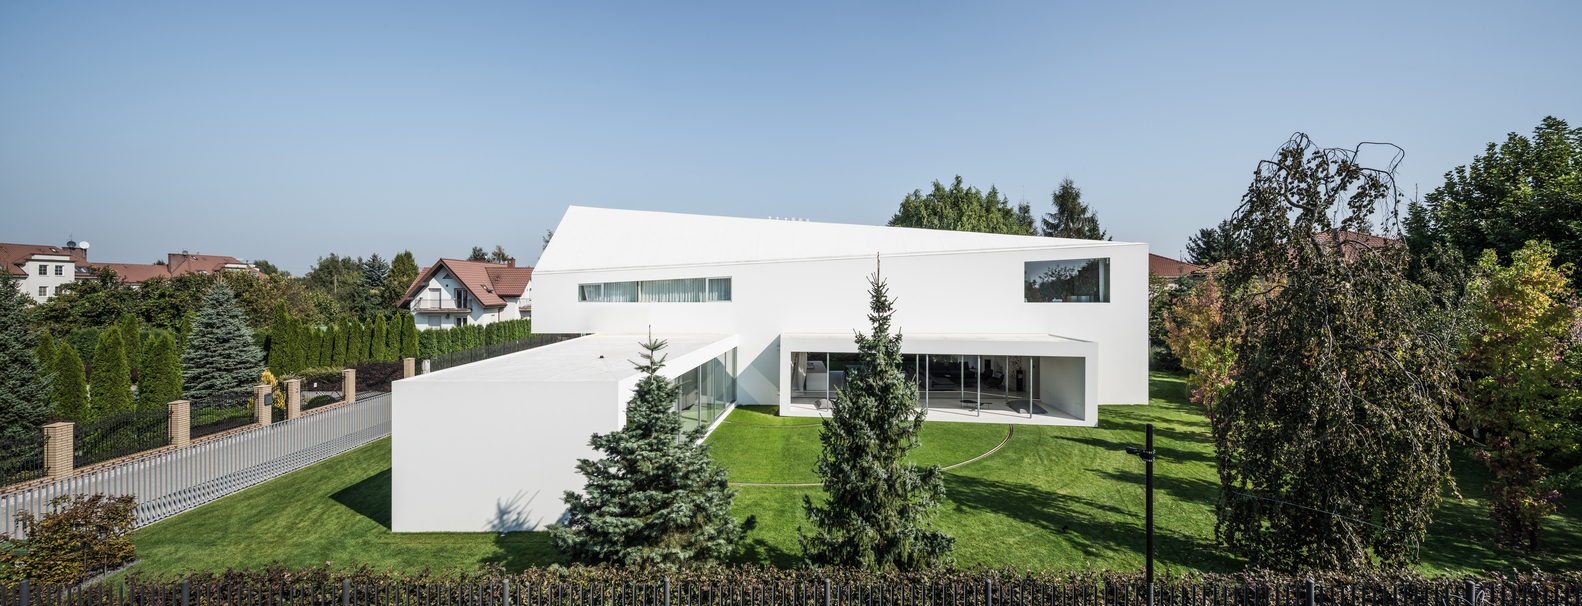 The house has two main volumes arranged perpendicularly to one another